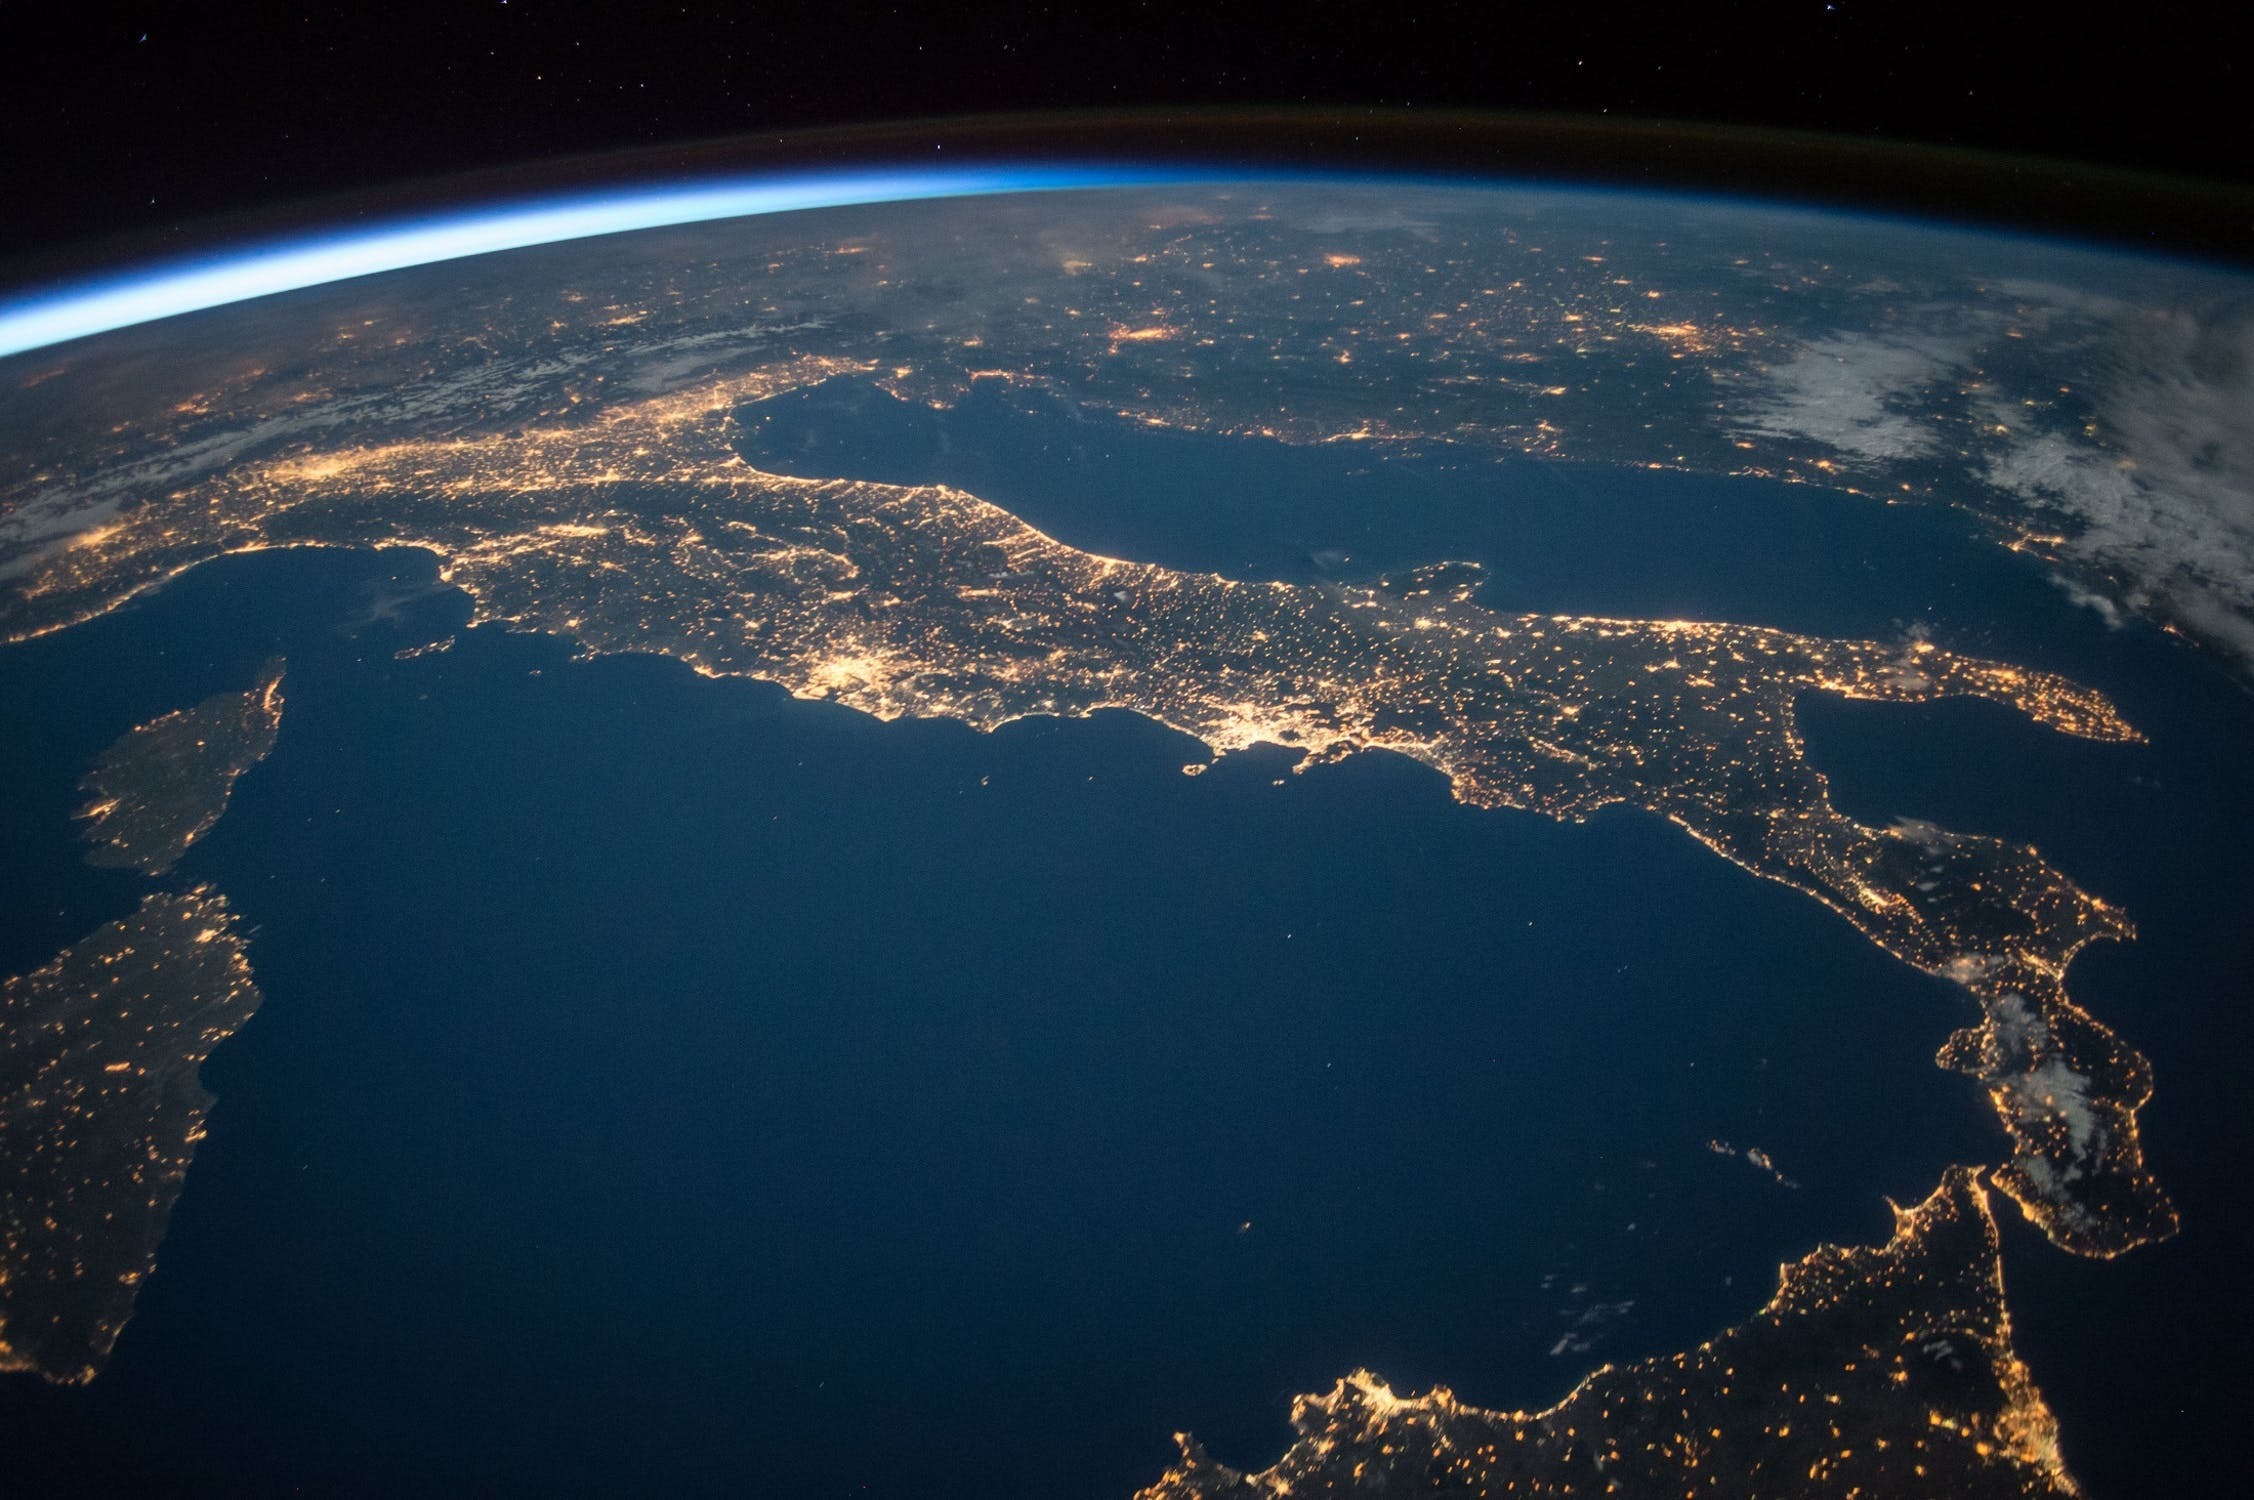 pictures from space - HD1733×1153